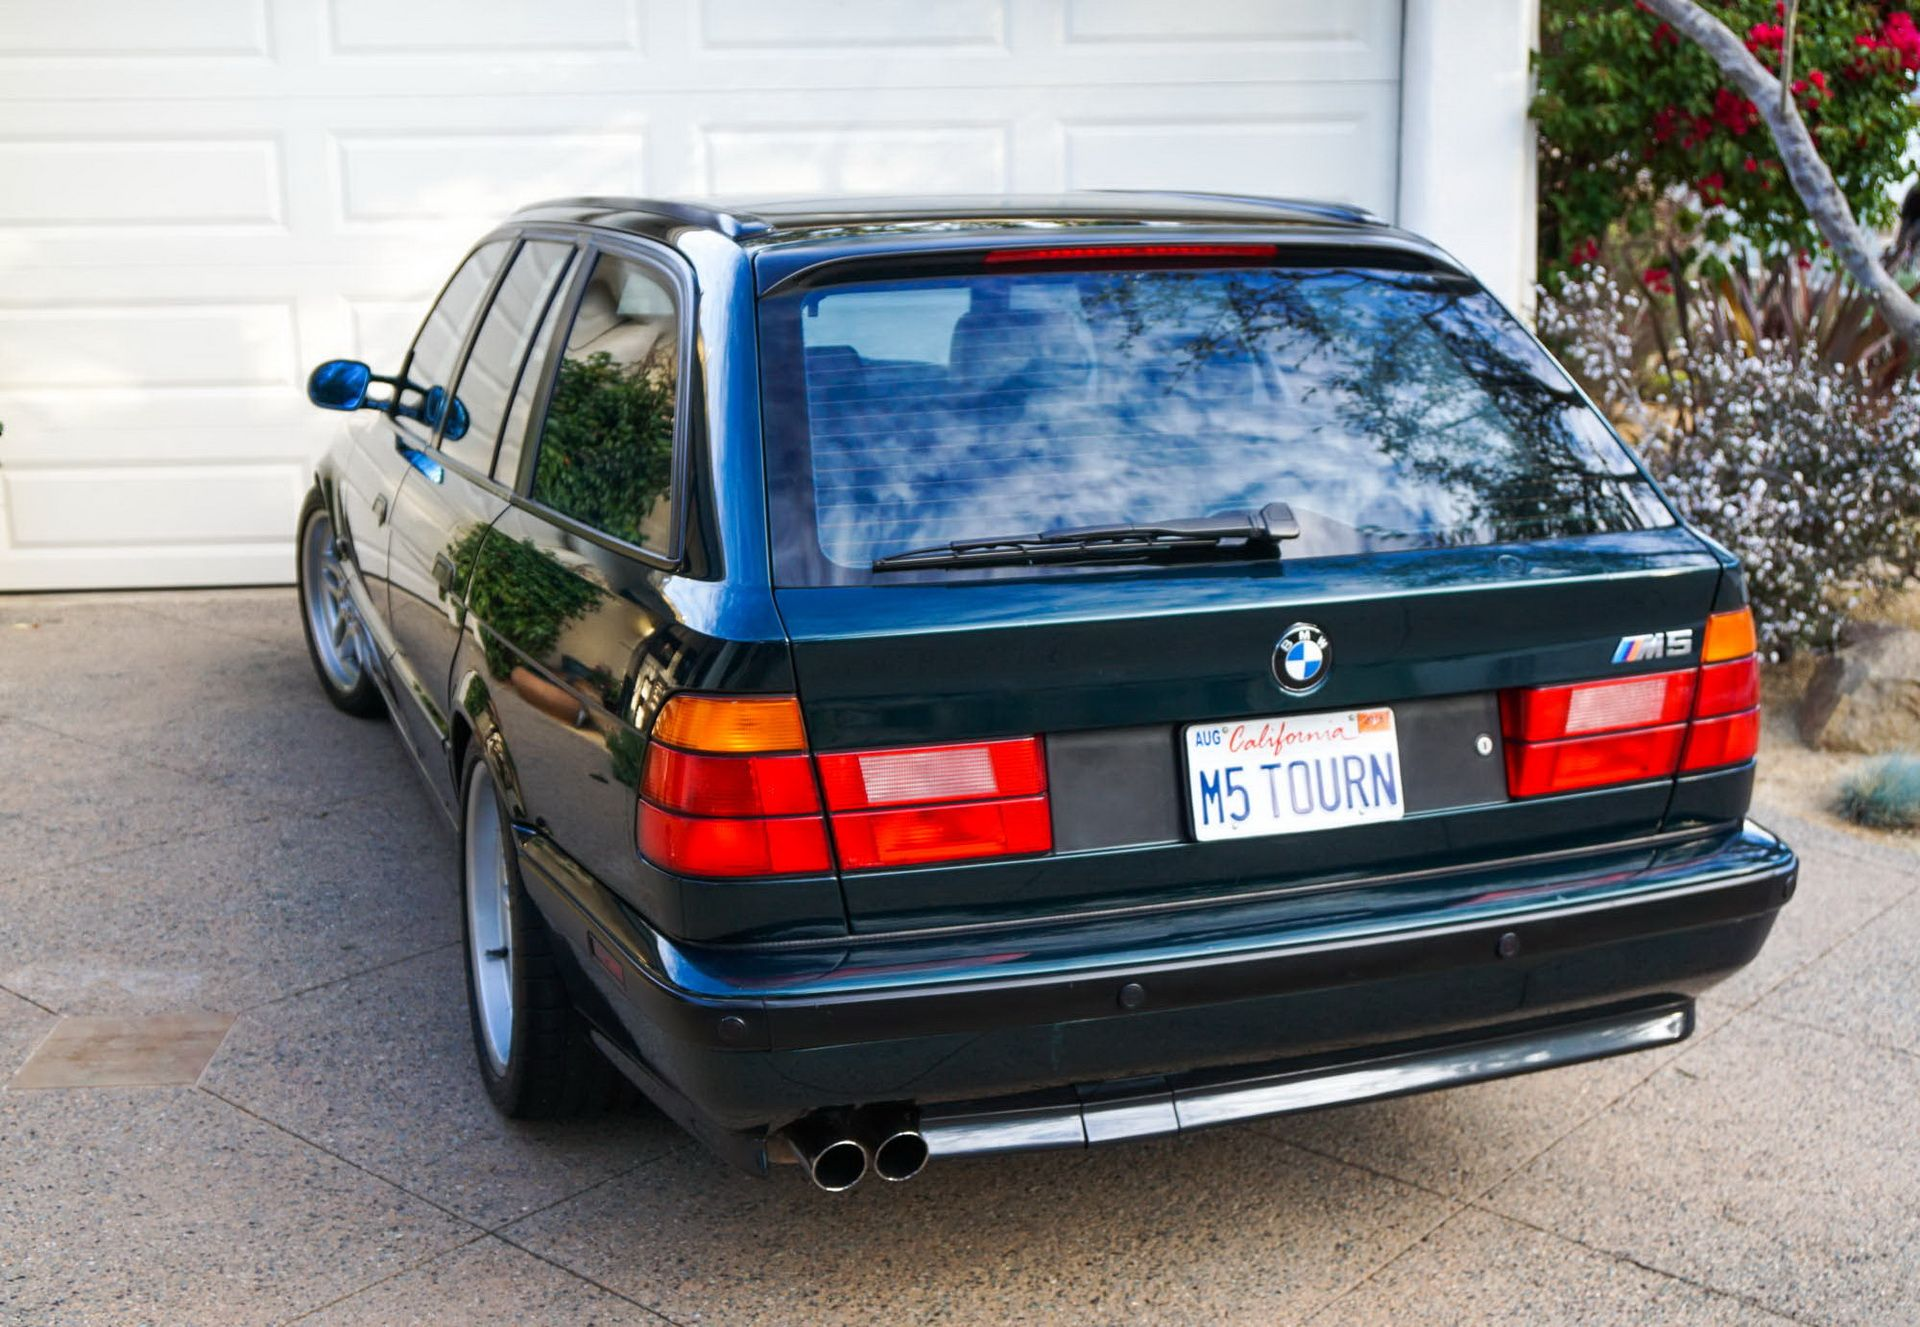 E34 BMW M5 Touring for sale (10)